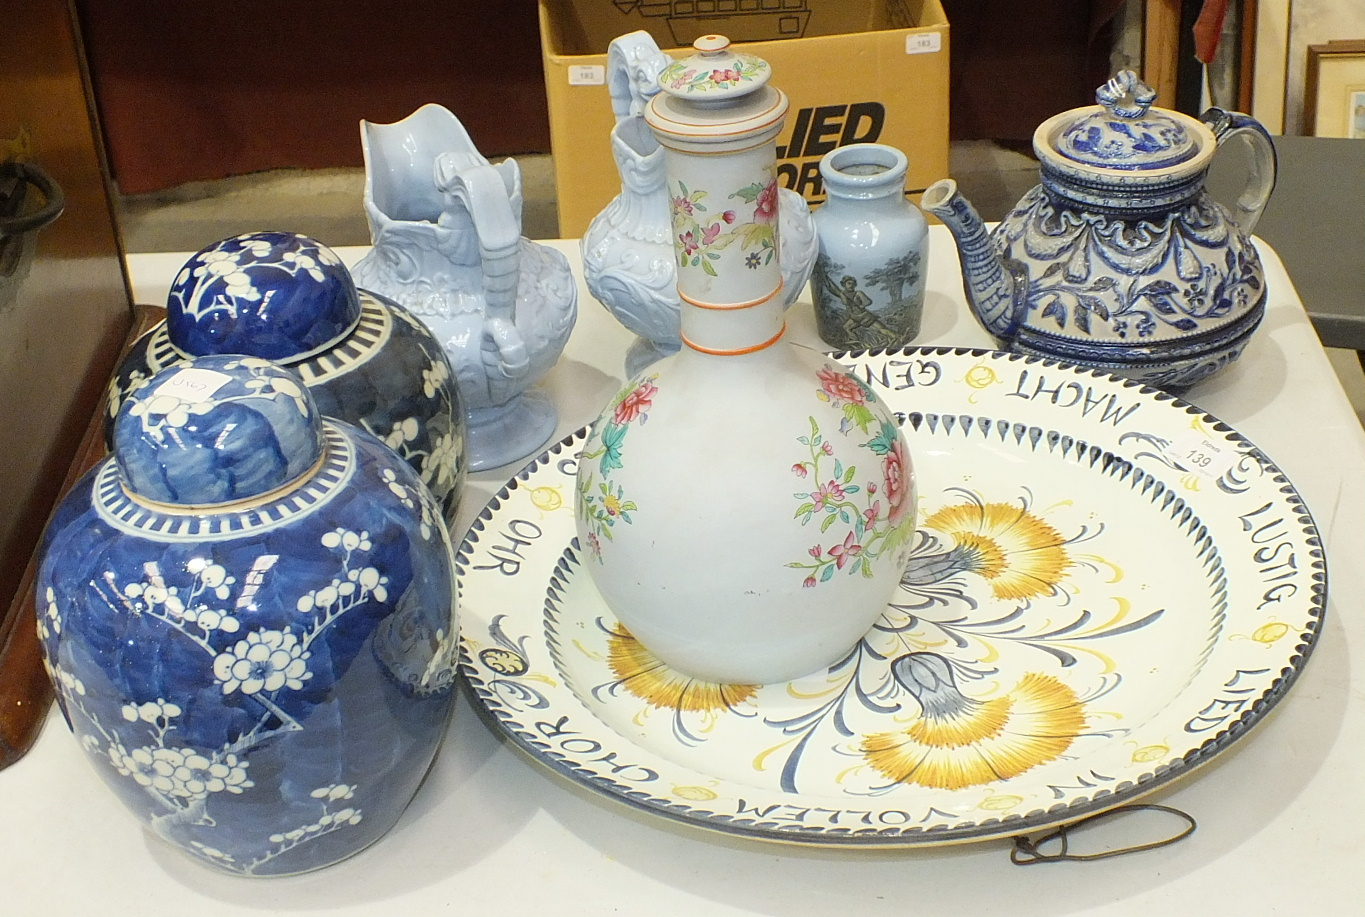 Lot 139 - Two 20th century Oriental blue and white ginger jars with covers, 21cm and 19cm, a Zell German